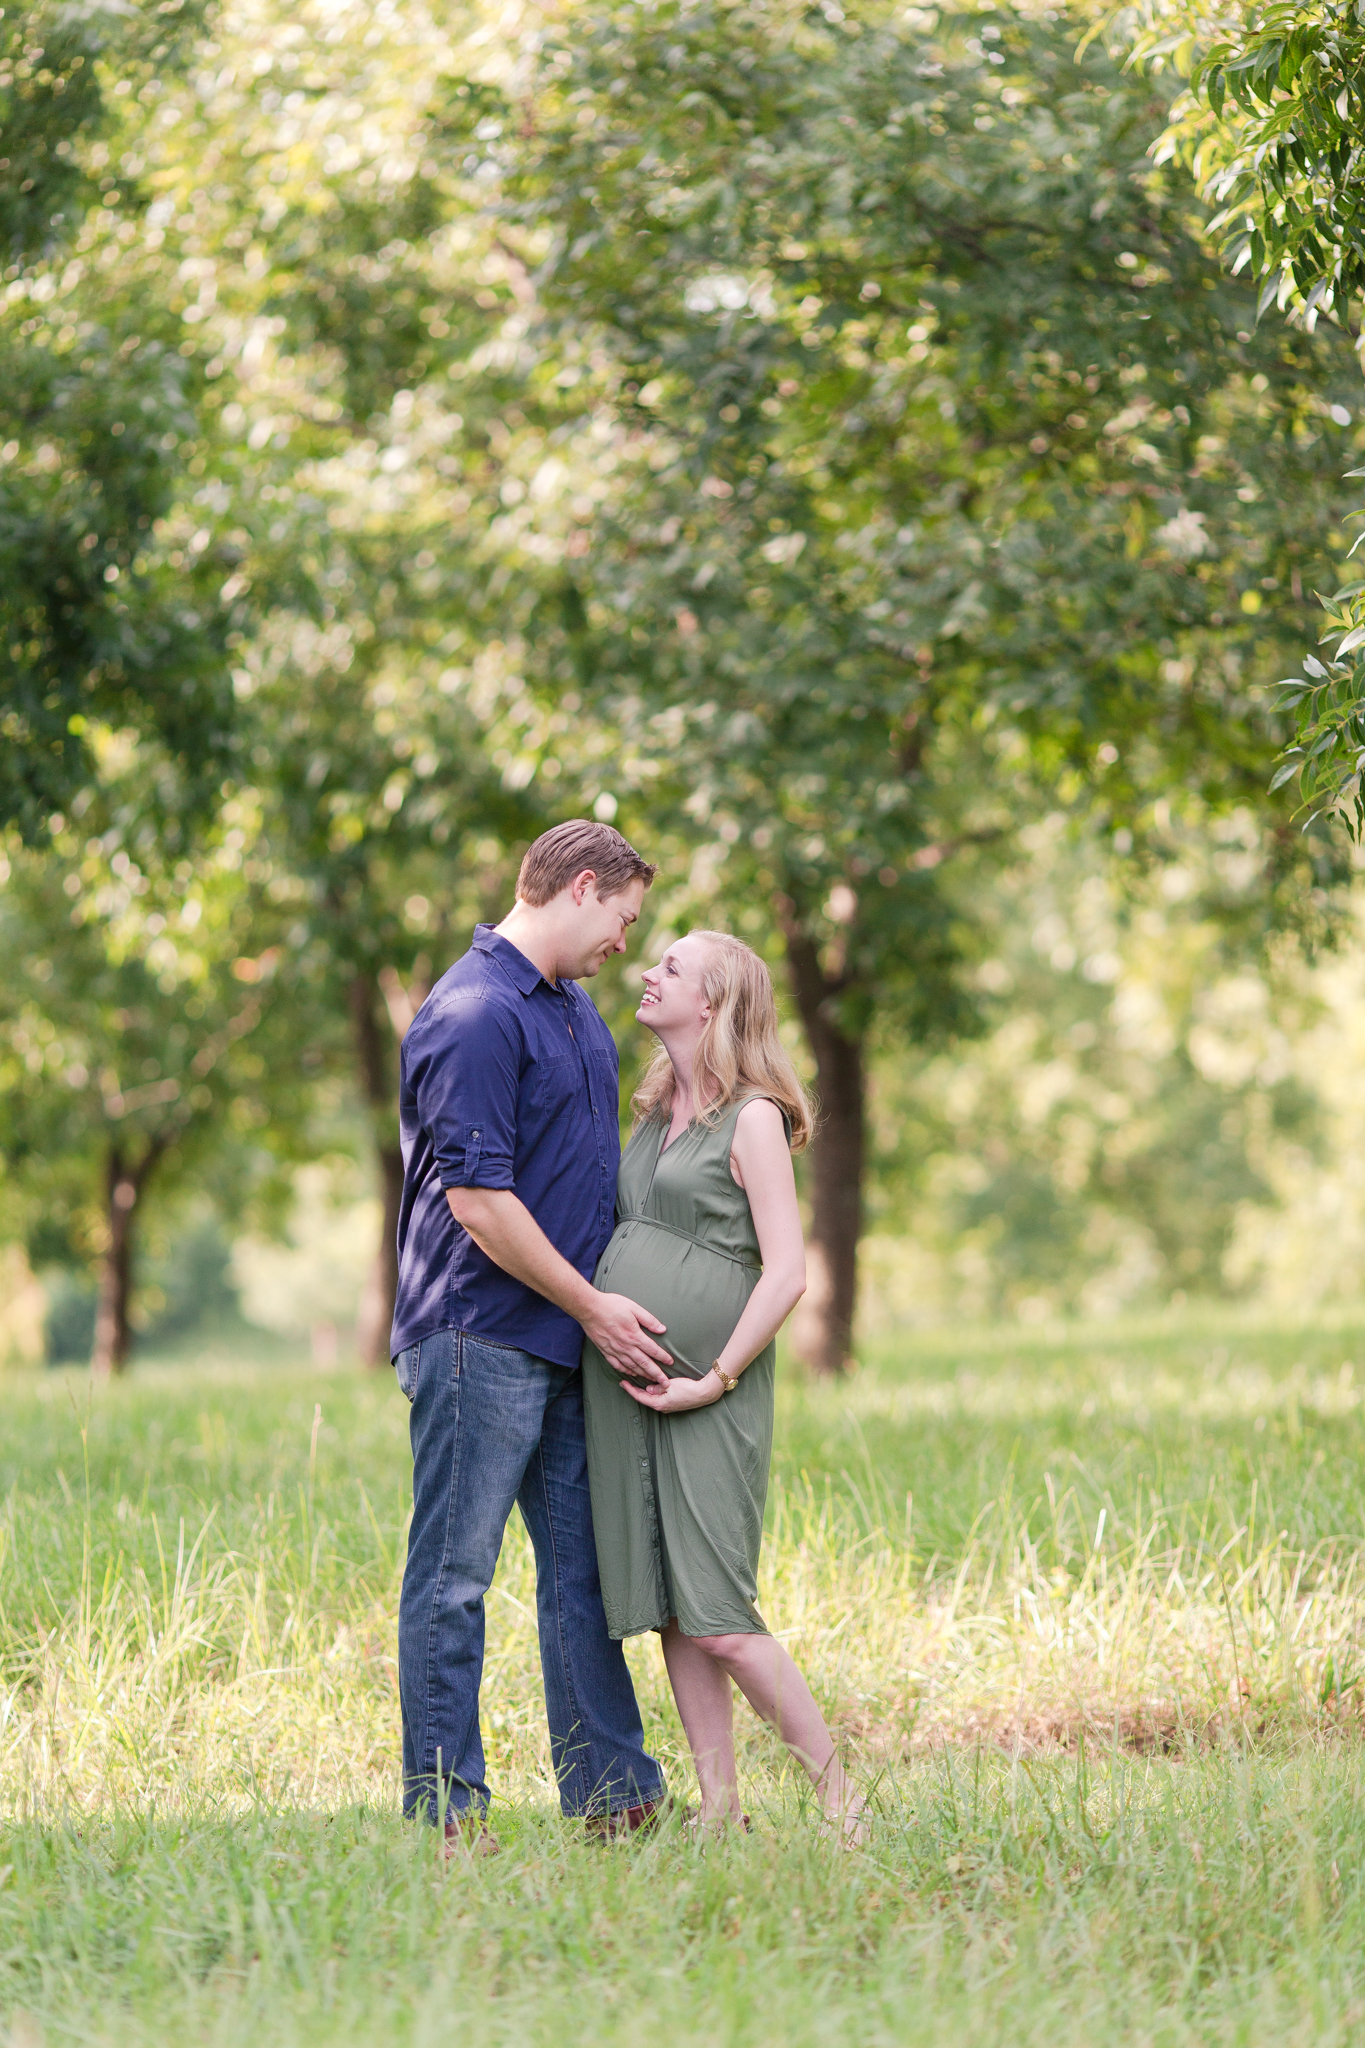 20170813-outdoor-maternity-photo-session-greenville-sc-5.jpg